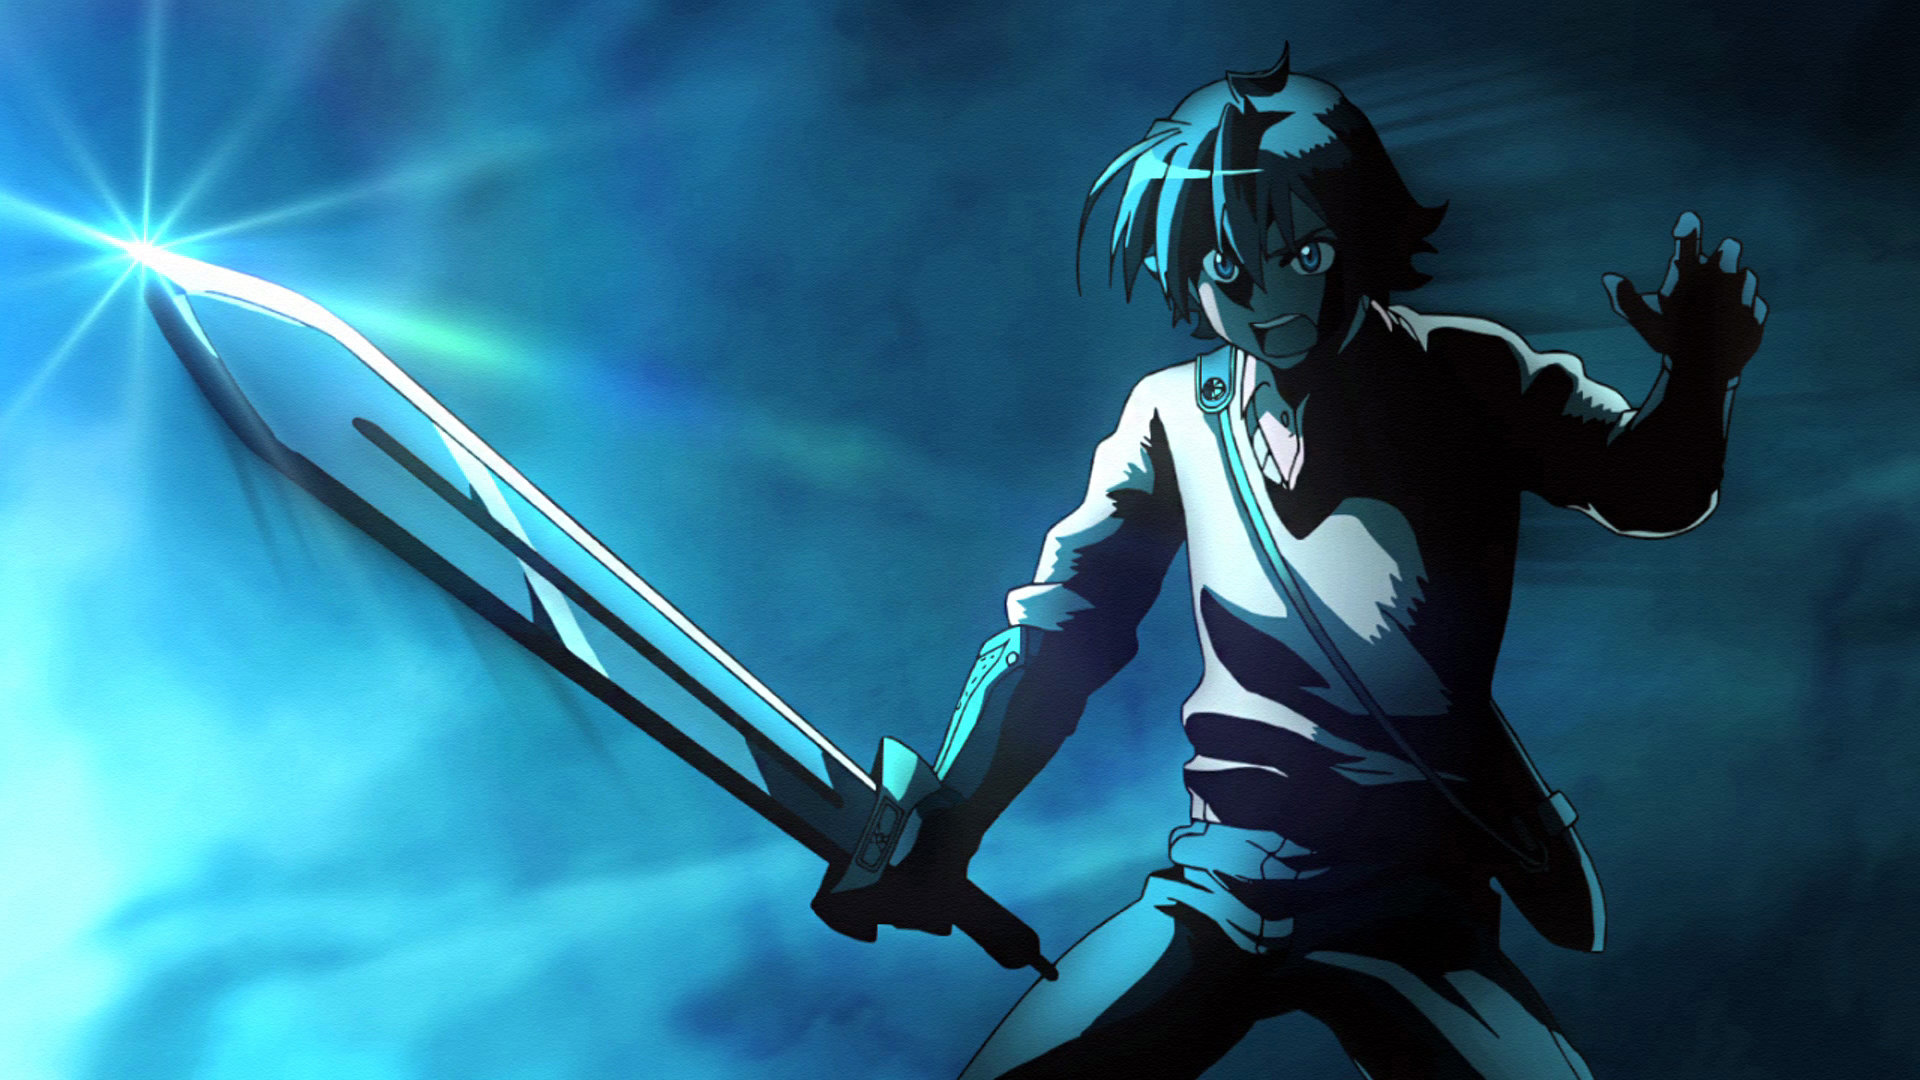 Tatsumi Akame Ga Kill Wallpapers Hd For Desktop Backgrounds